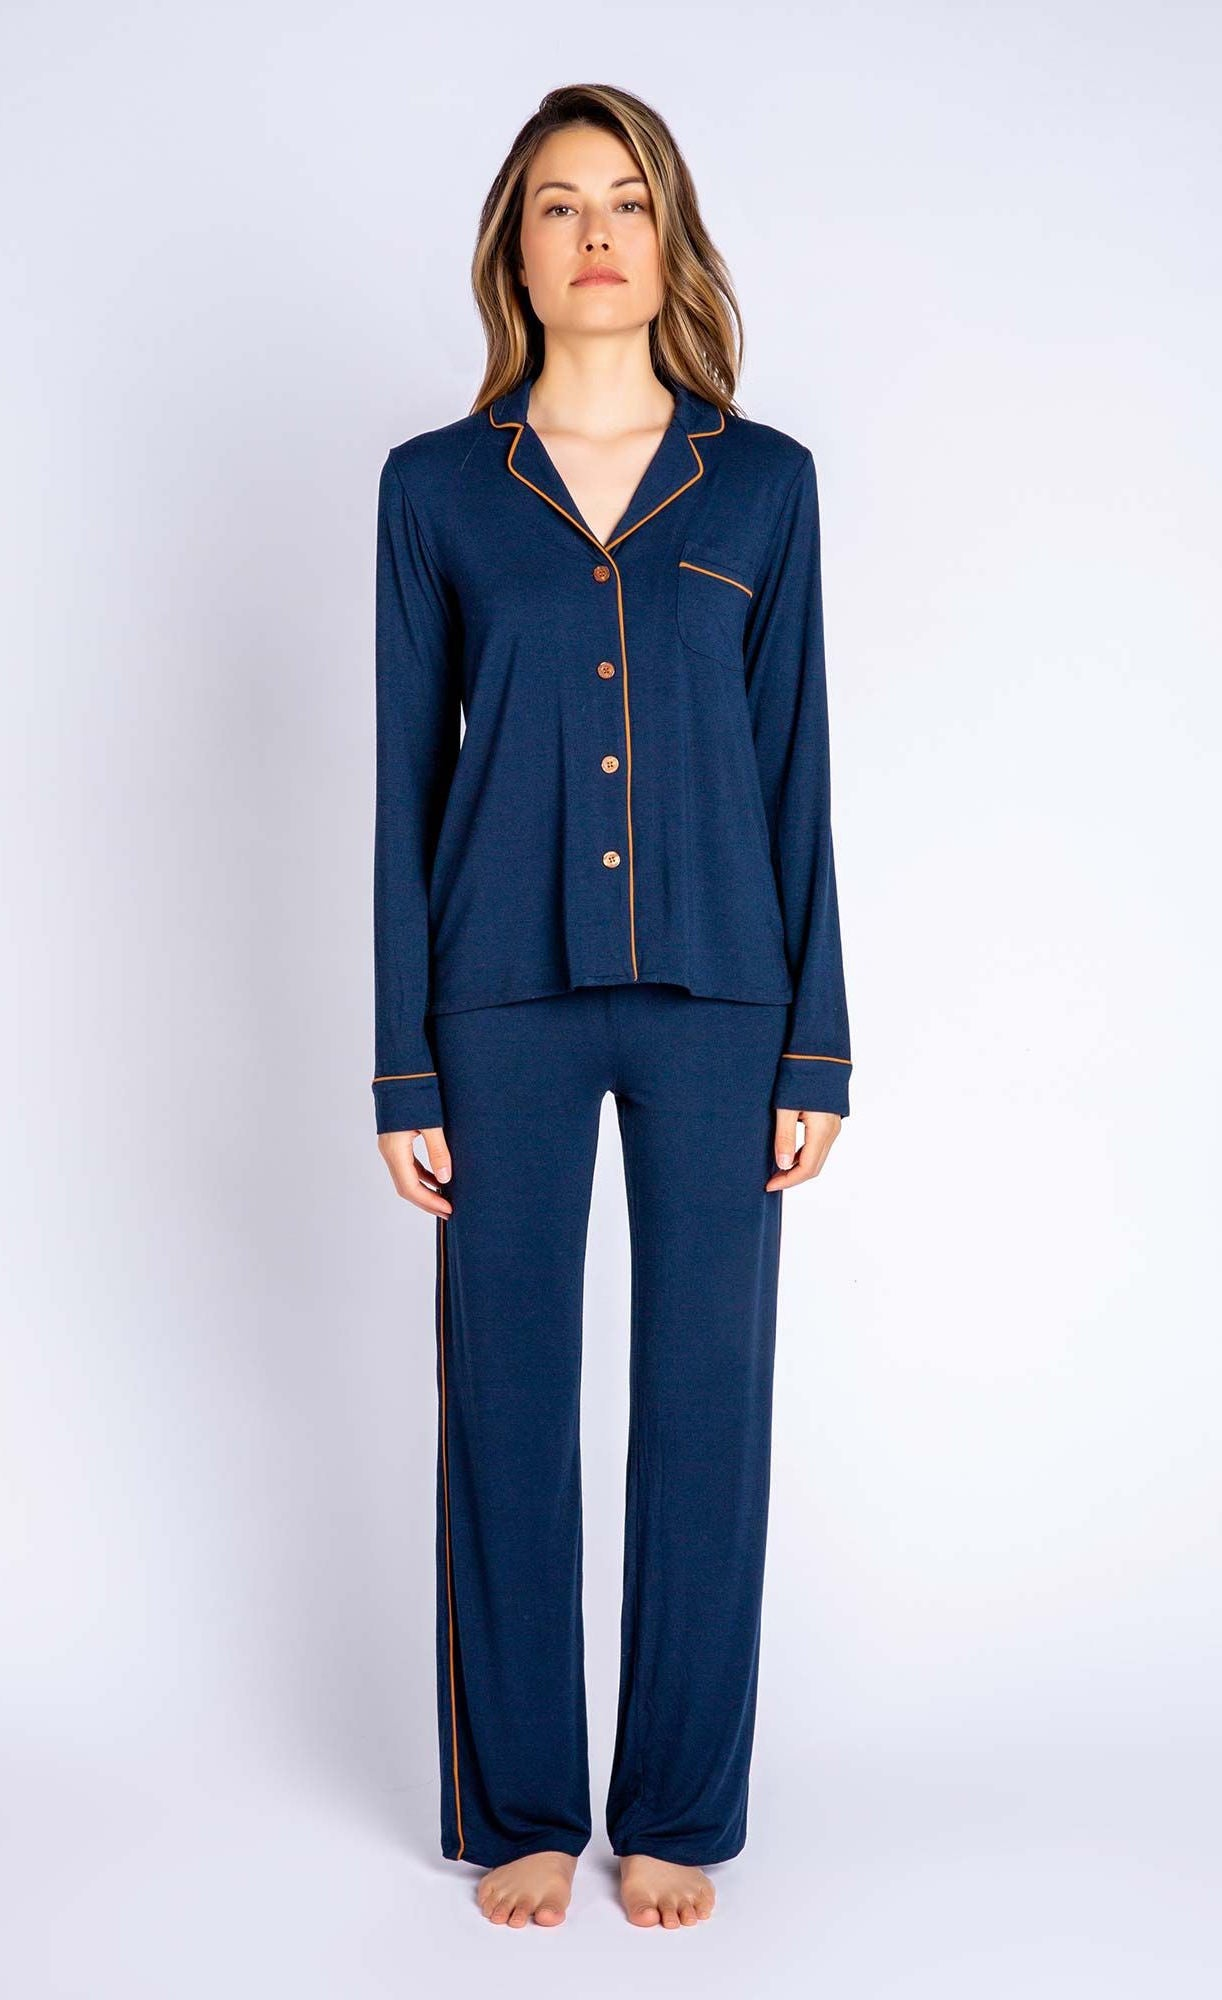 Front angle of woman wearing matching navy pj top and pj bottom from PJ Salvage